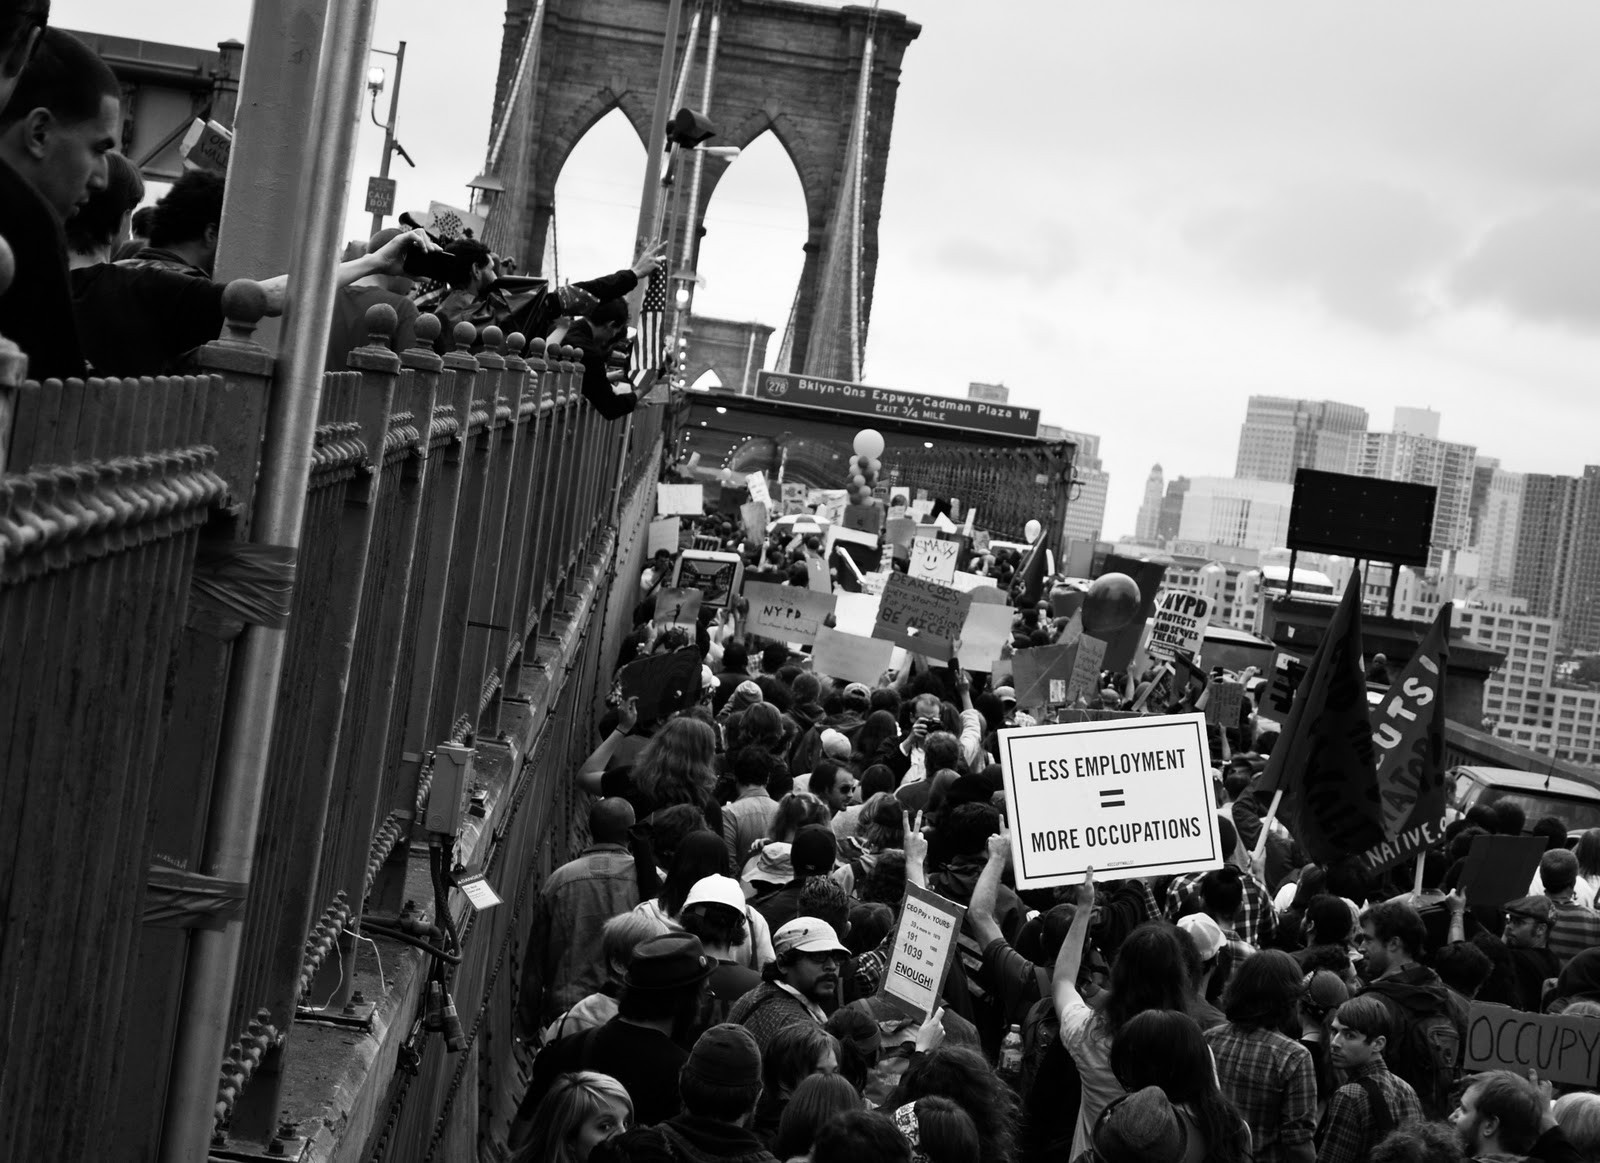 One of Ben Valentine's photos of Occupy Wall Street protesters on the Brooklyn Bridge